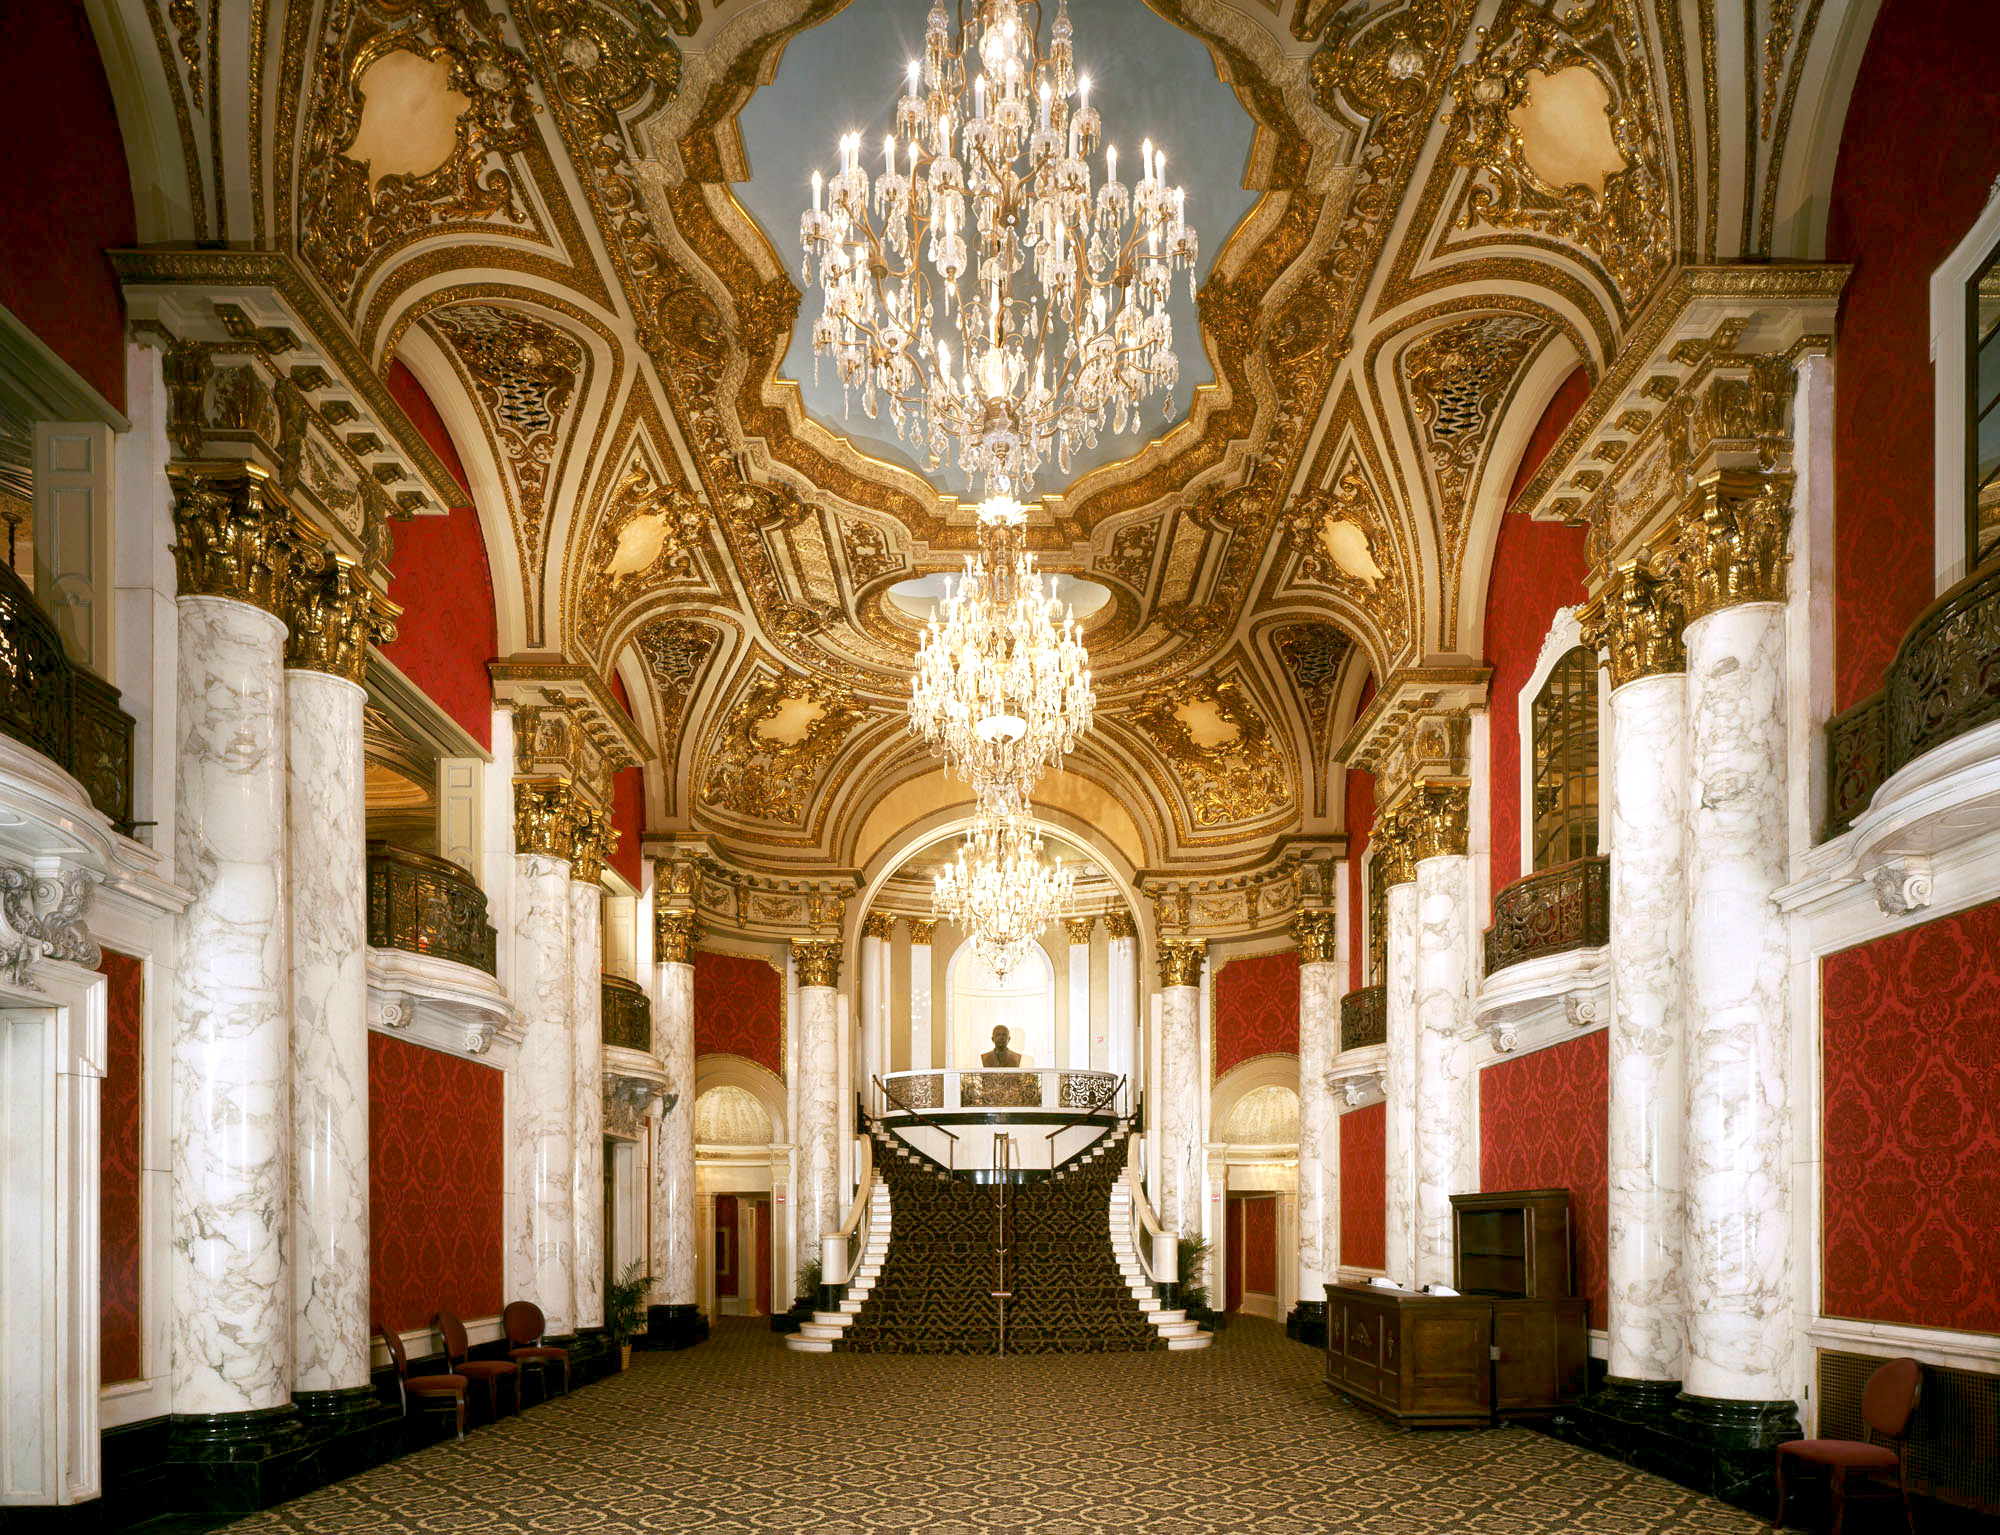 Ornate Entry hall with chandeliers, marble columns and red tapestries, with stairs in the background.